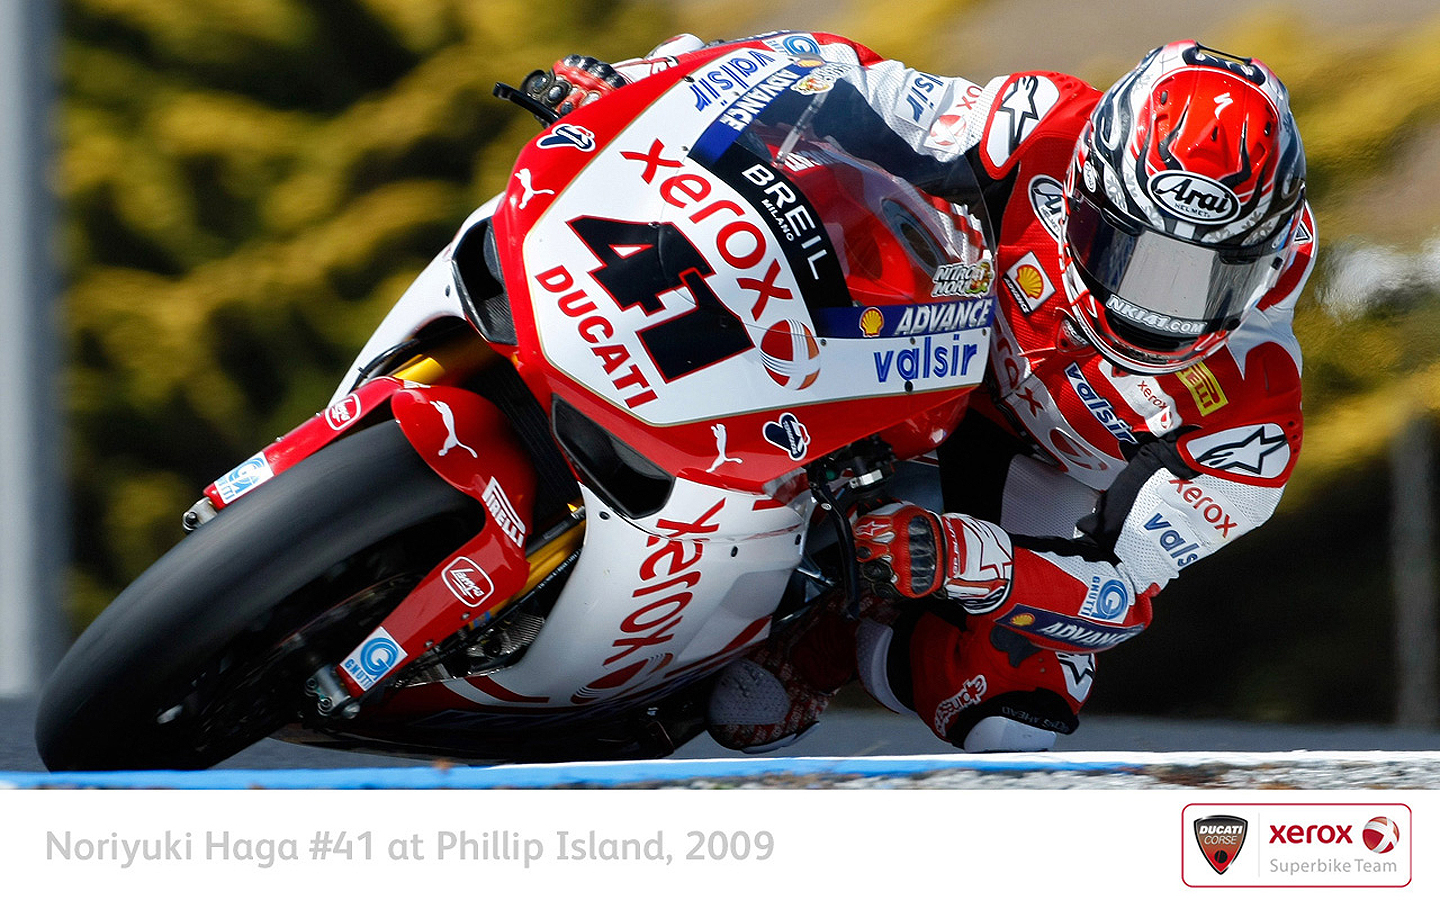 ducati wallpapers: ducati 1198 superbike wallpapers